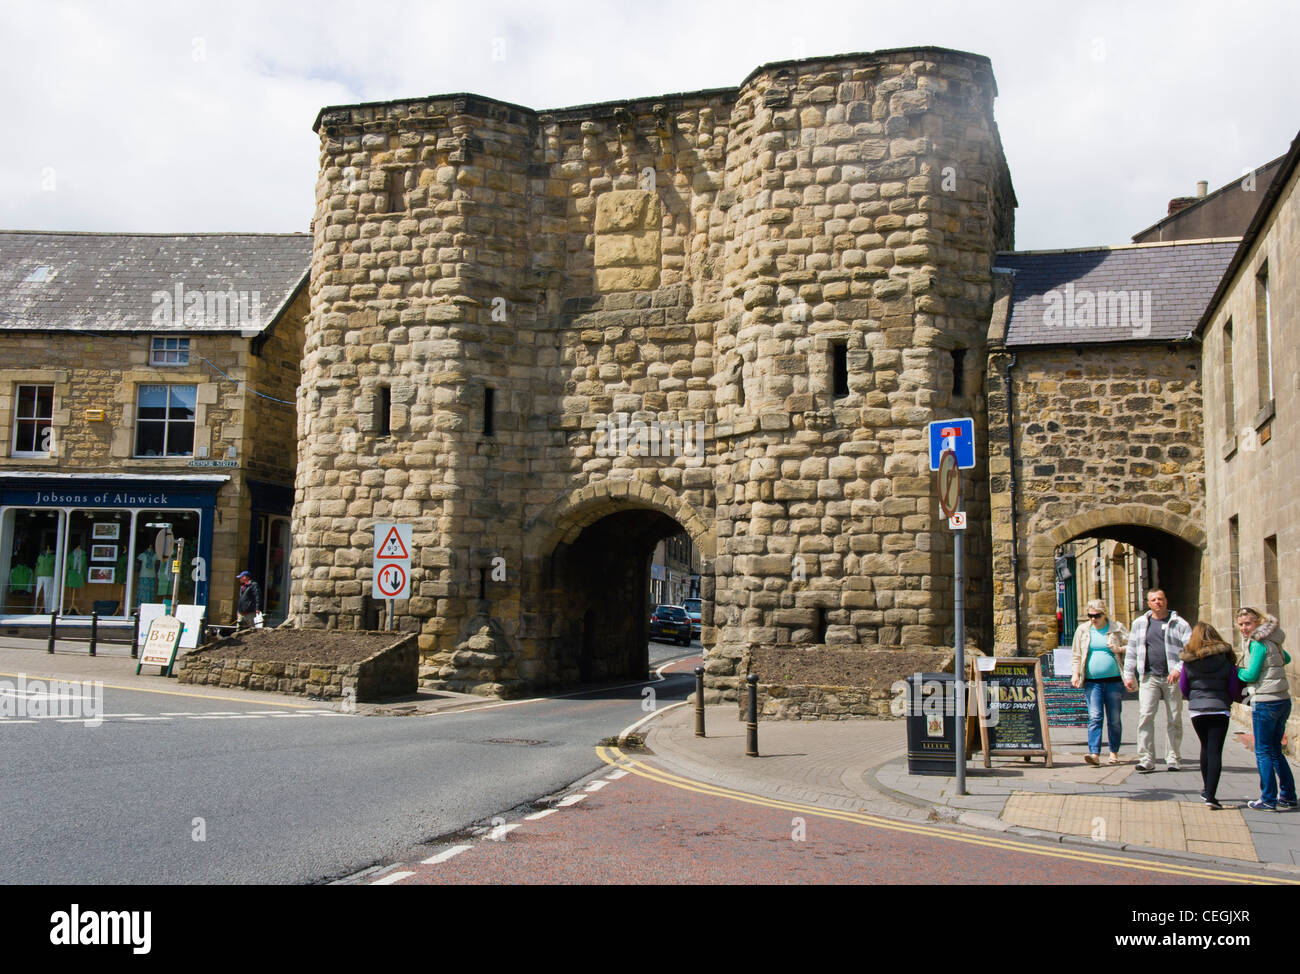 Alnwick, Northumberland, England. Entrance through the narrow arch of the Bondgate Tower, - Stock Image